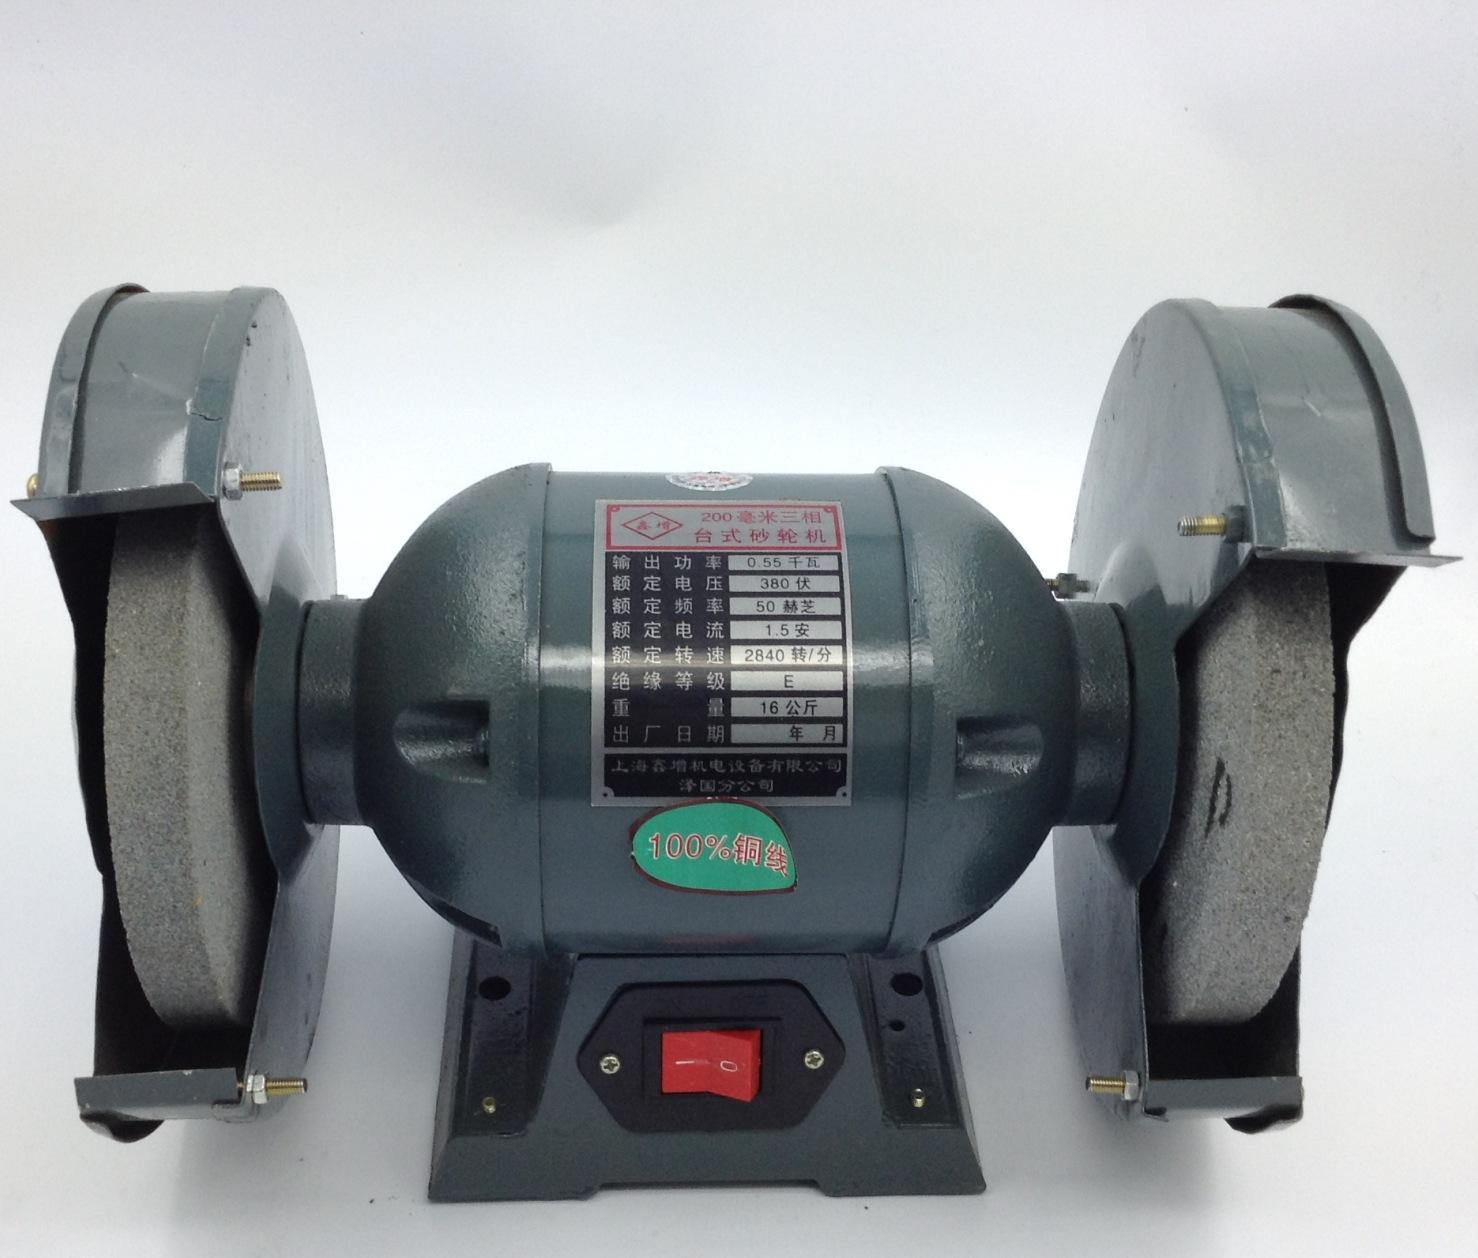 Enjoyable Hot Item 200Mm Bench Grinder For Grinding Stone Caraccident5 Cool Chair Designs And Ideas Caraccident5Info